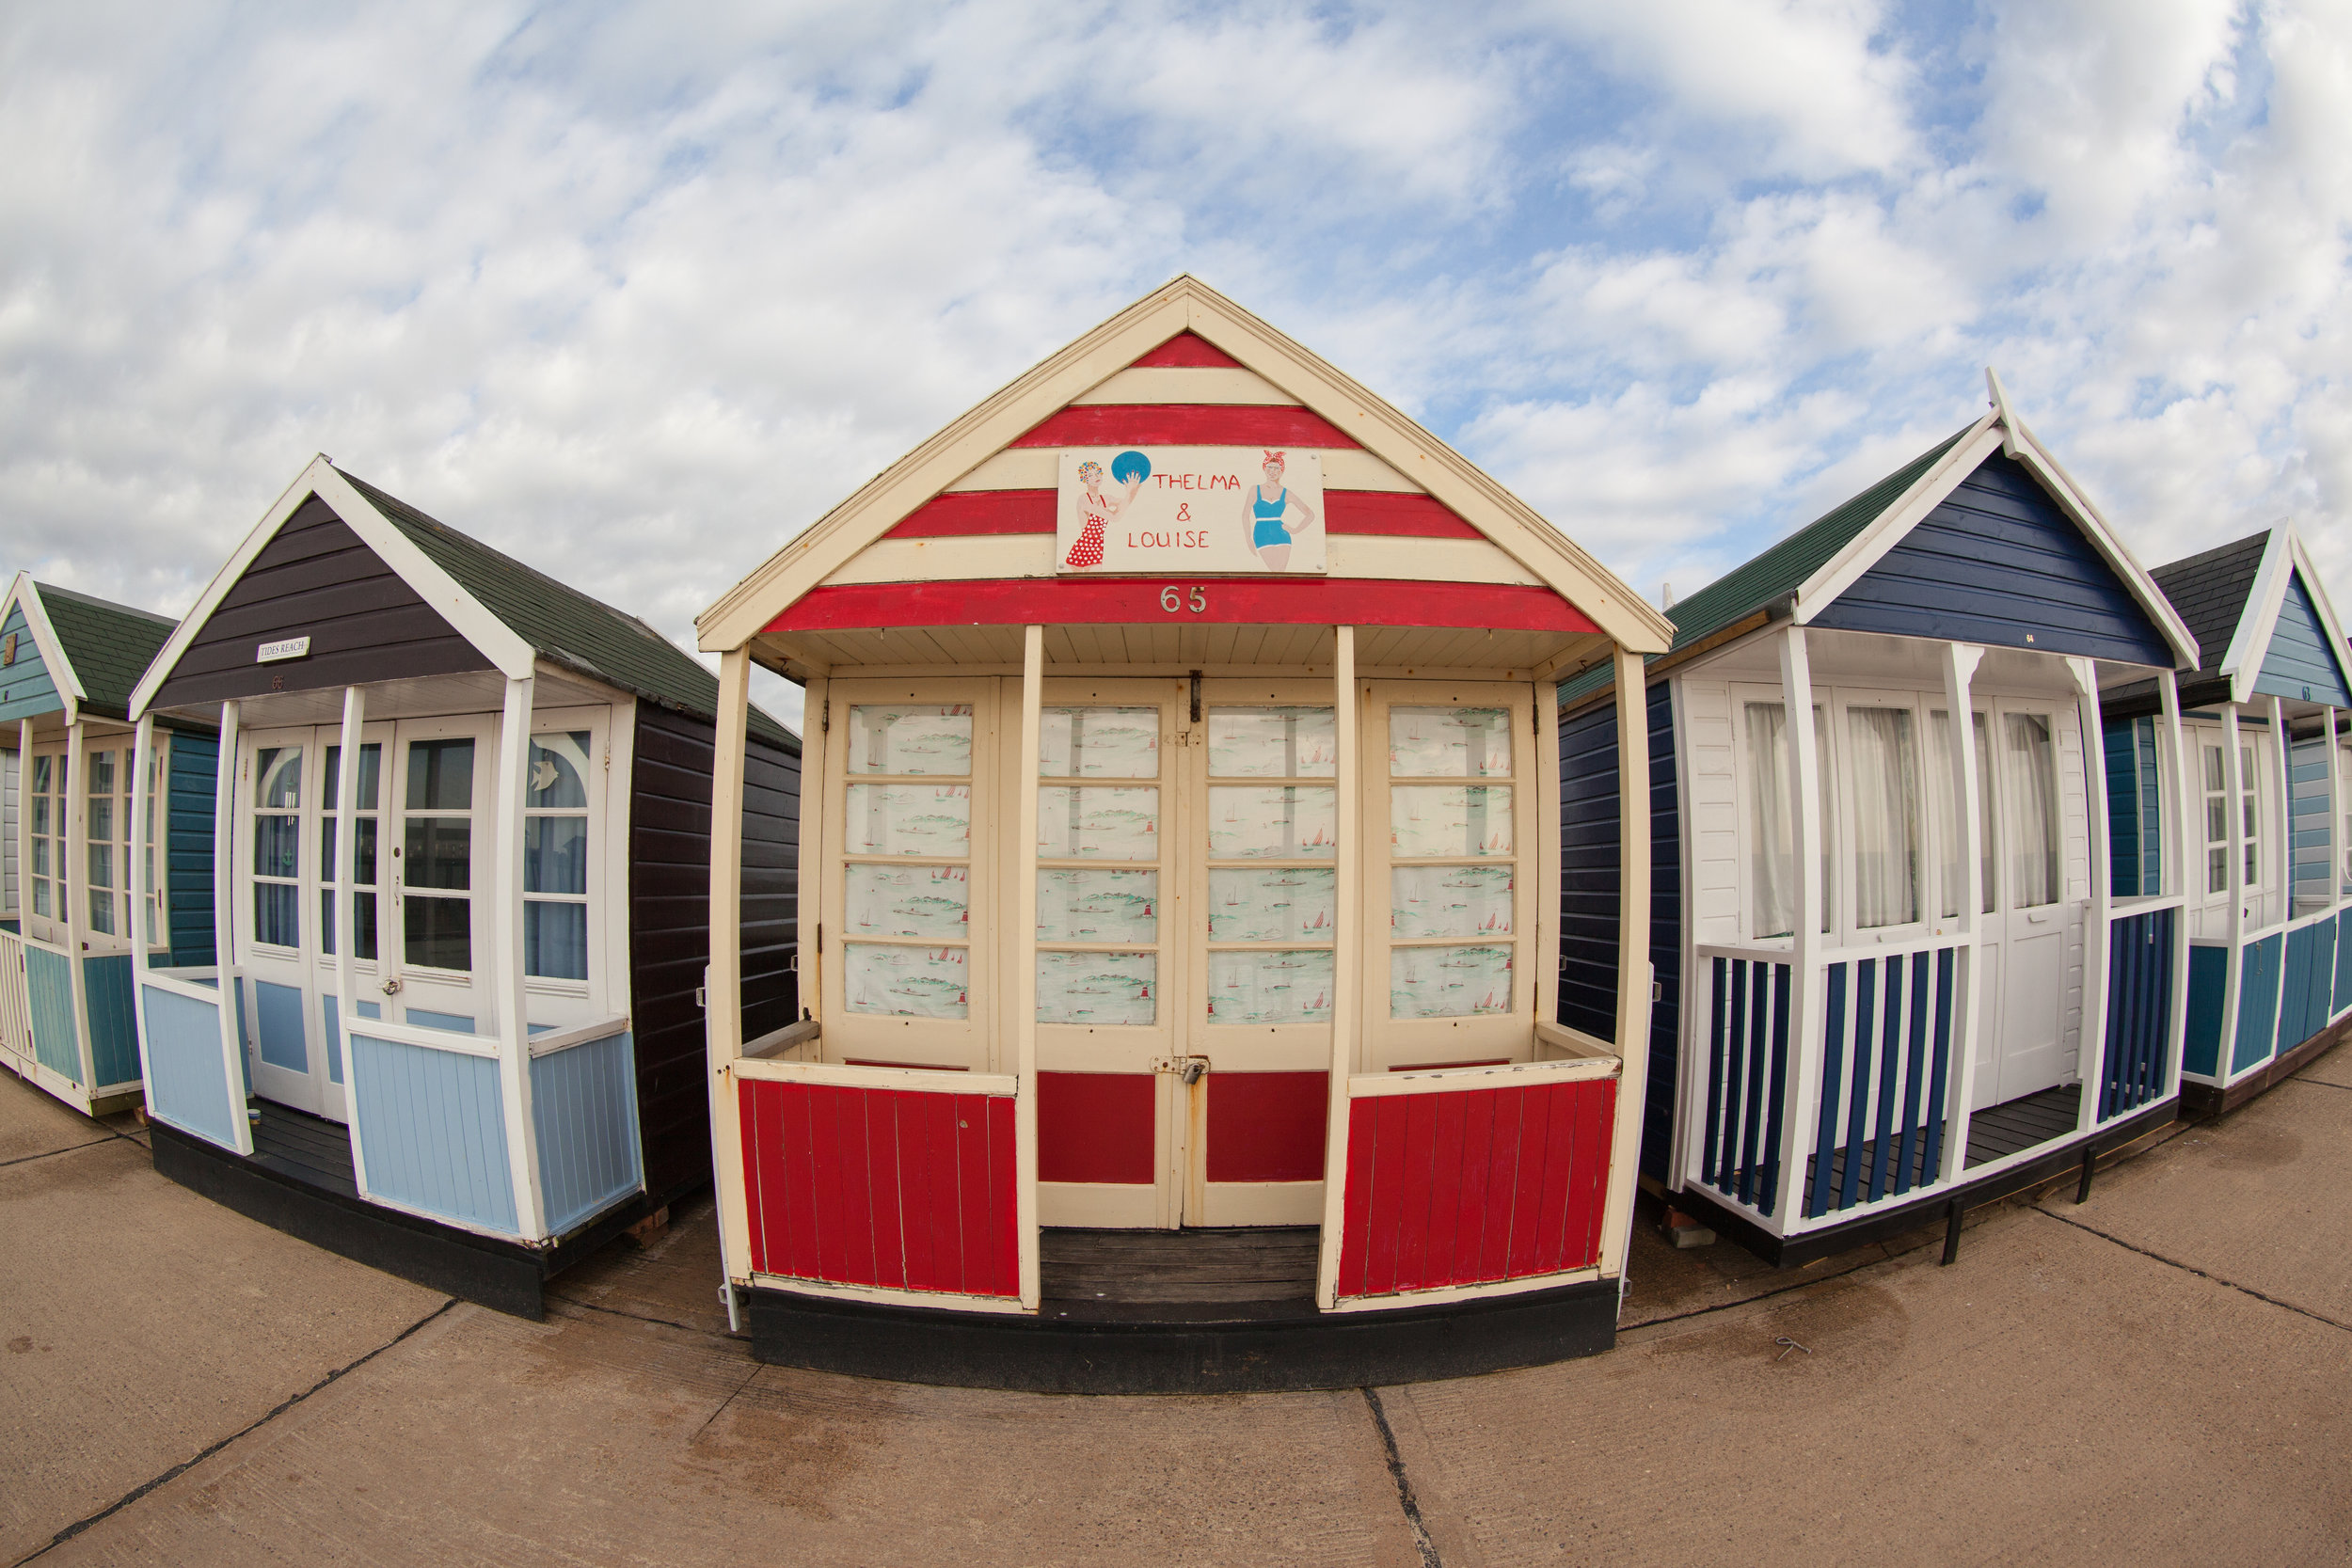 Traditional English beach huts at Southwold.